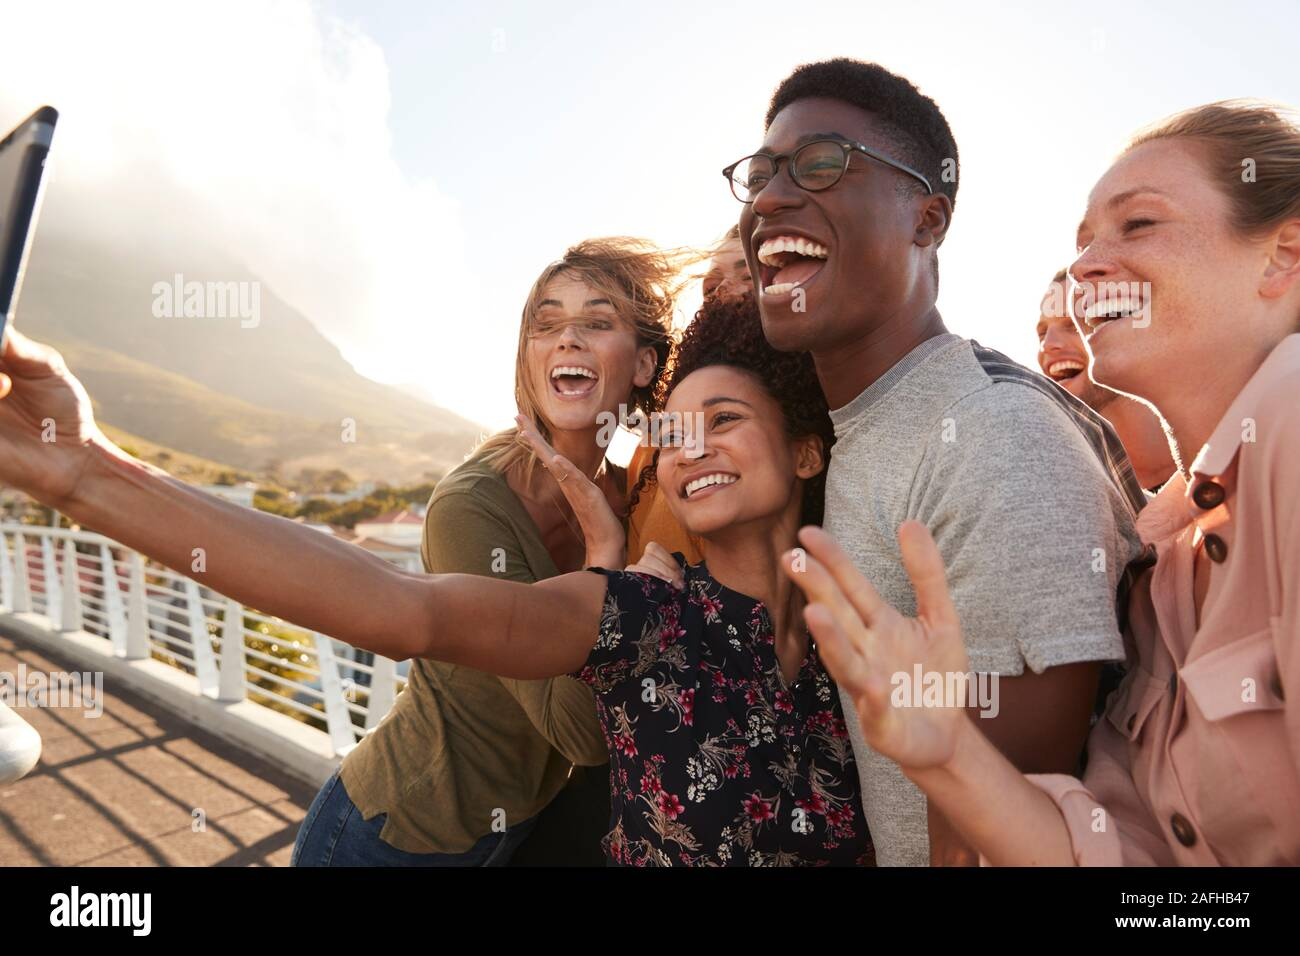 Smiling Young Friends Posing For Selfie On Outdoor Footbridge Together Stock Photo